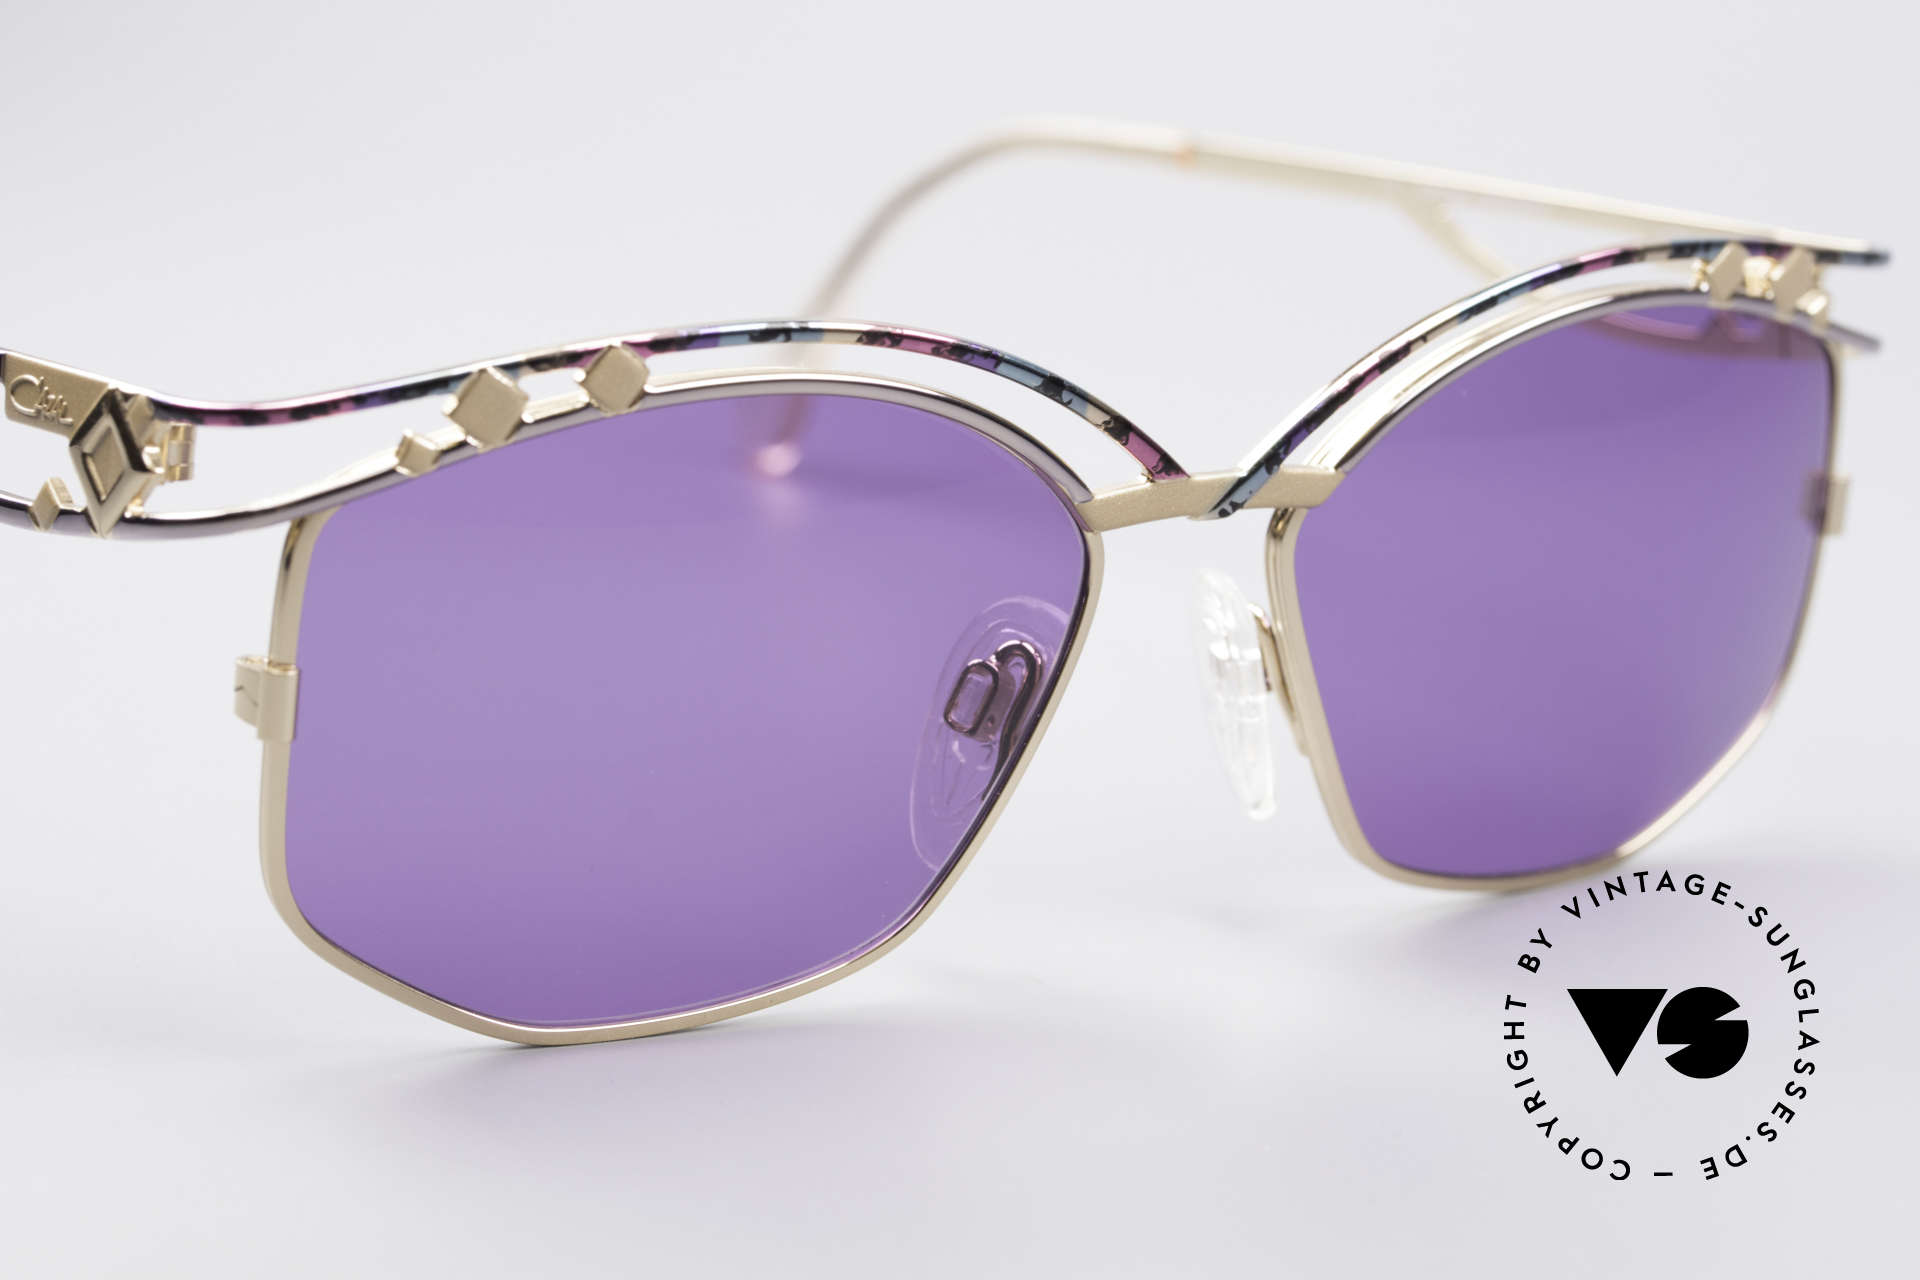 Cazal 280 90s Designer Sunglasses Ladies, purple sun lenses could be replaced with prescriptions, Made for Women